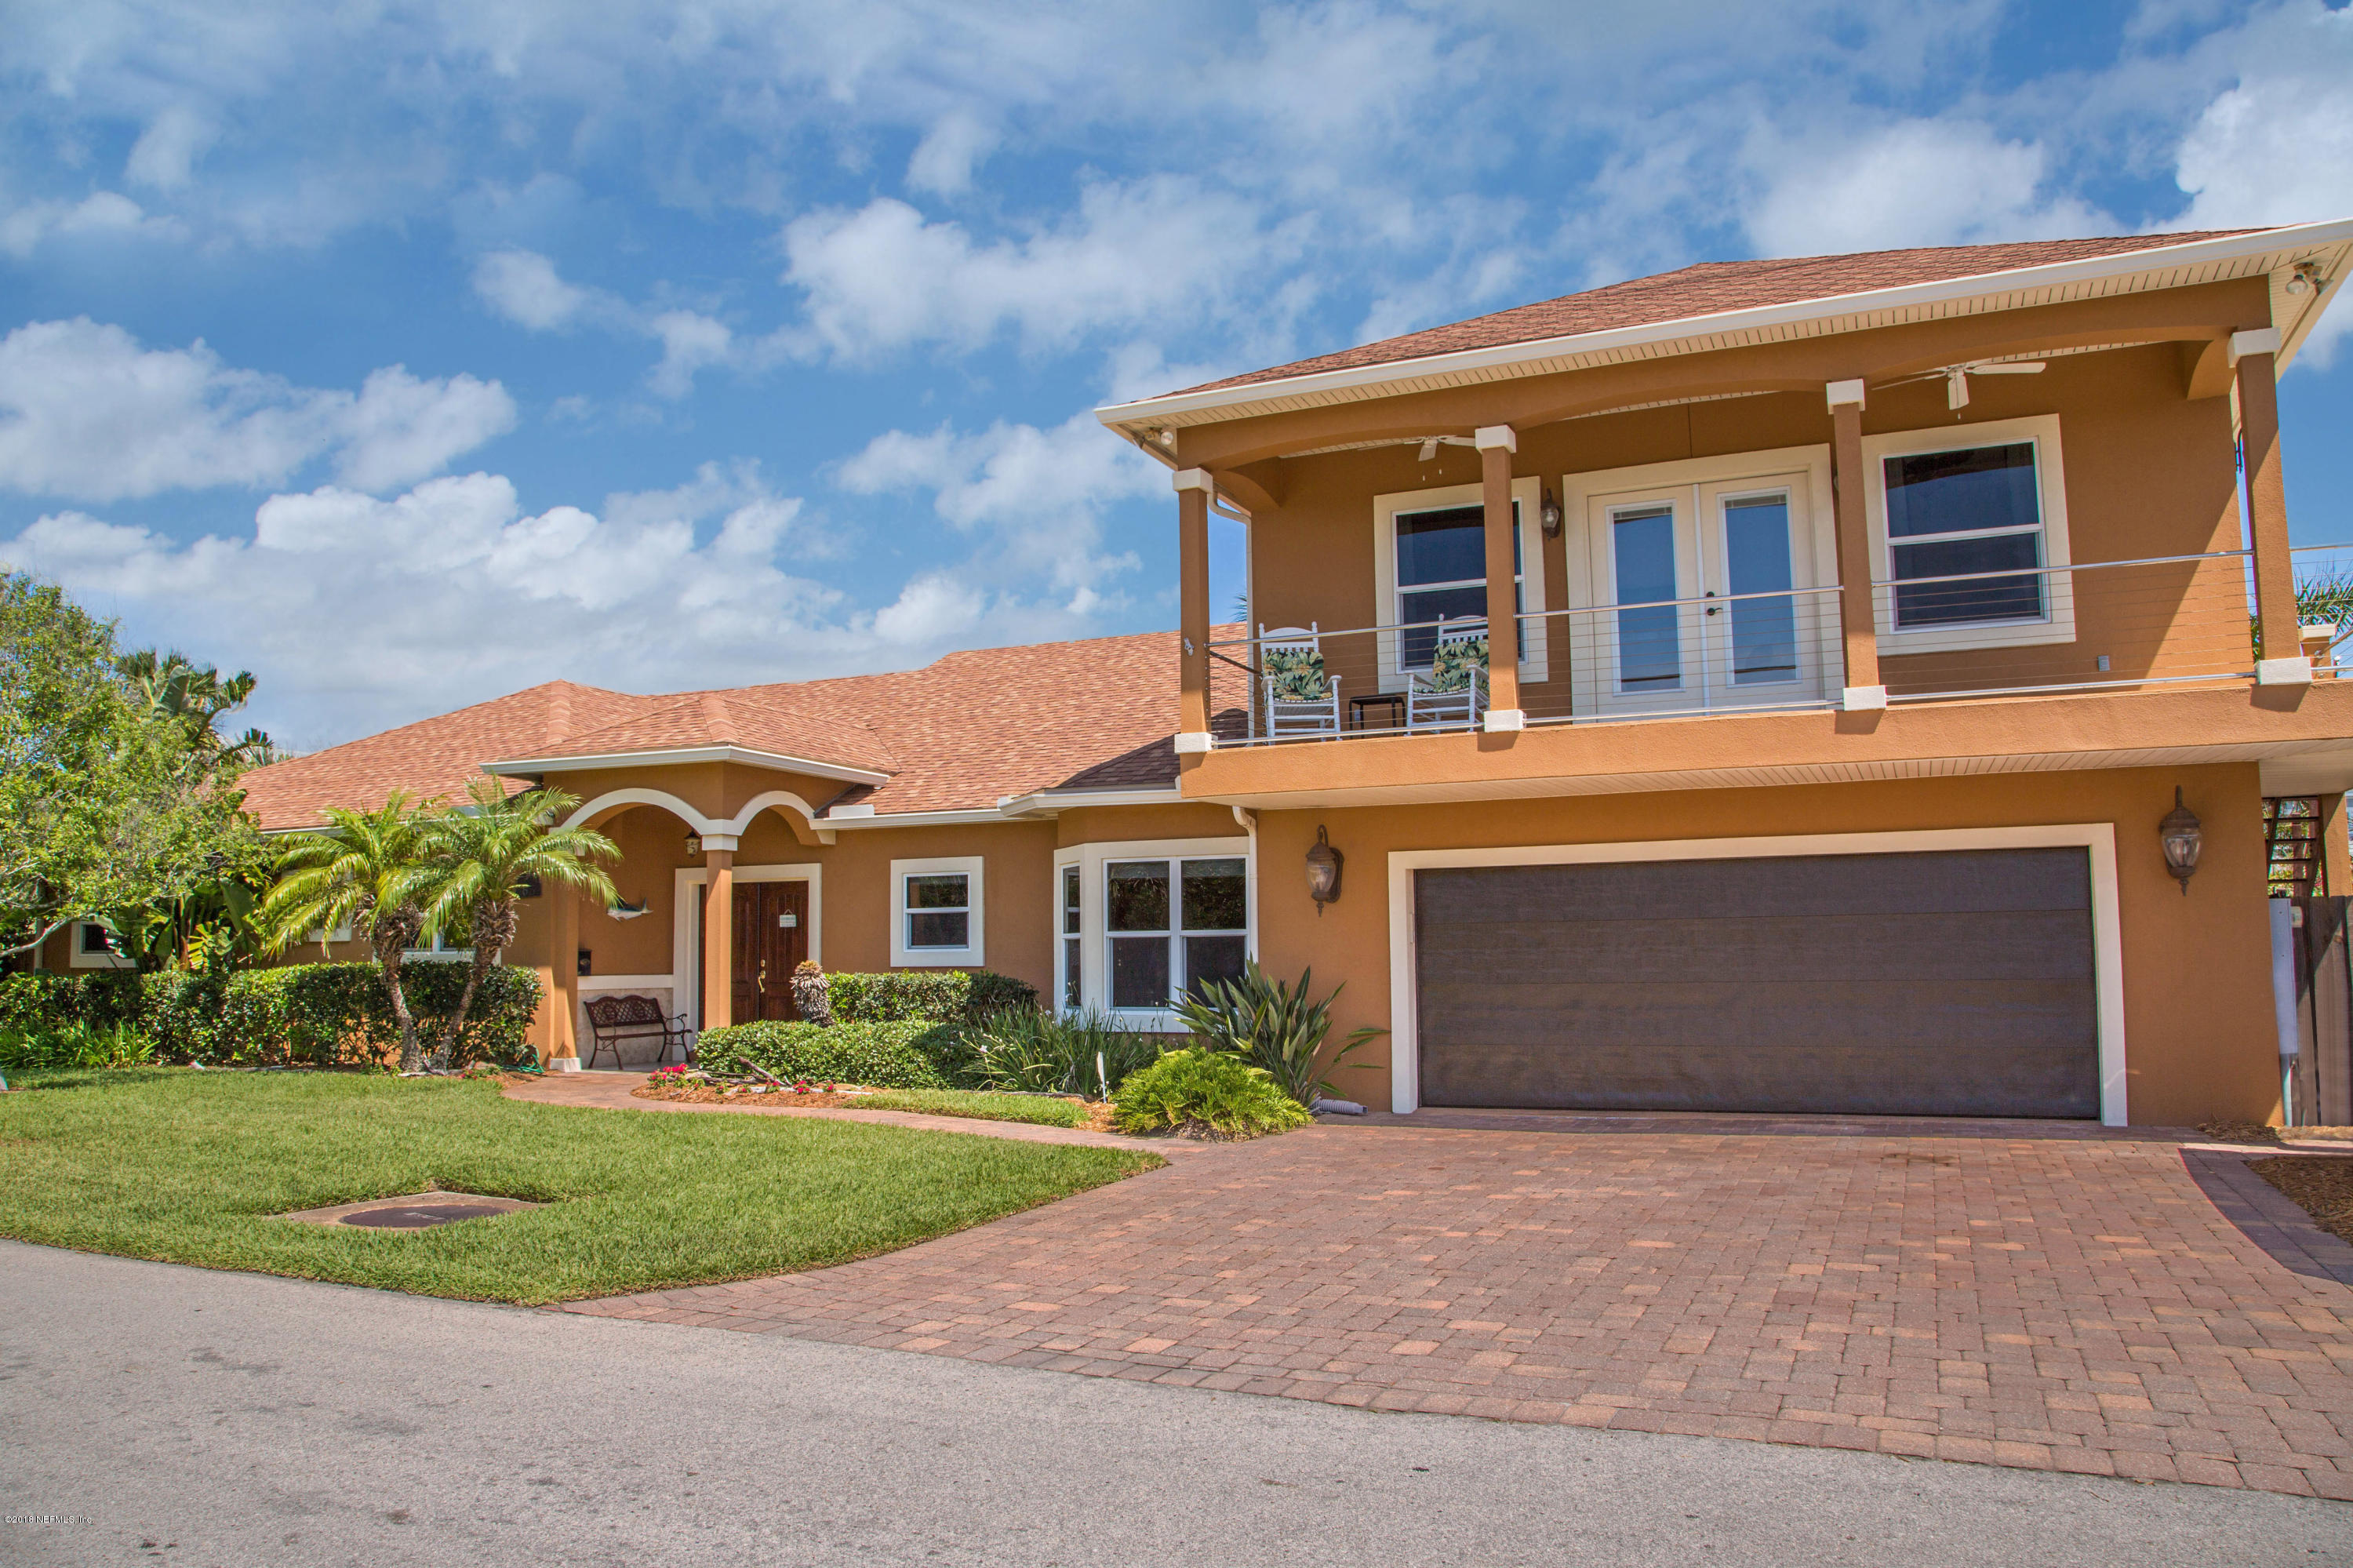 63 37TH, JACKSONVILLE BEACH, FLORIDA 32250, 3 Bedrooms Bedrooms, ,3 BathroomsBathrooms,Residential - single family,For sale,37TH,957622